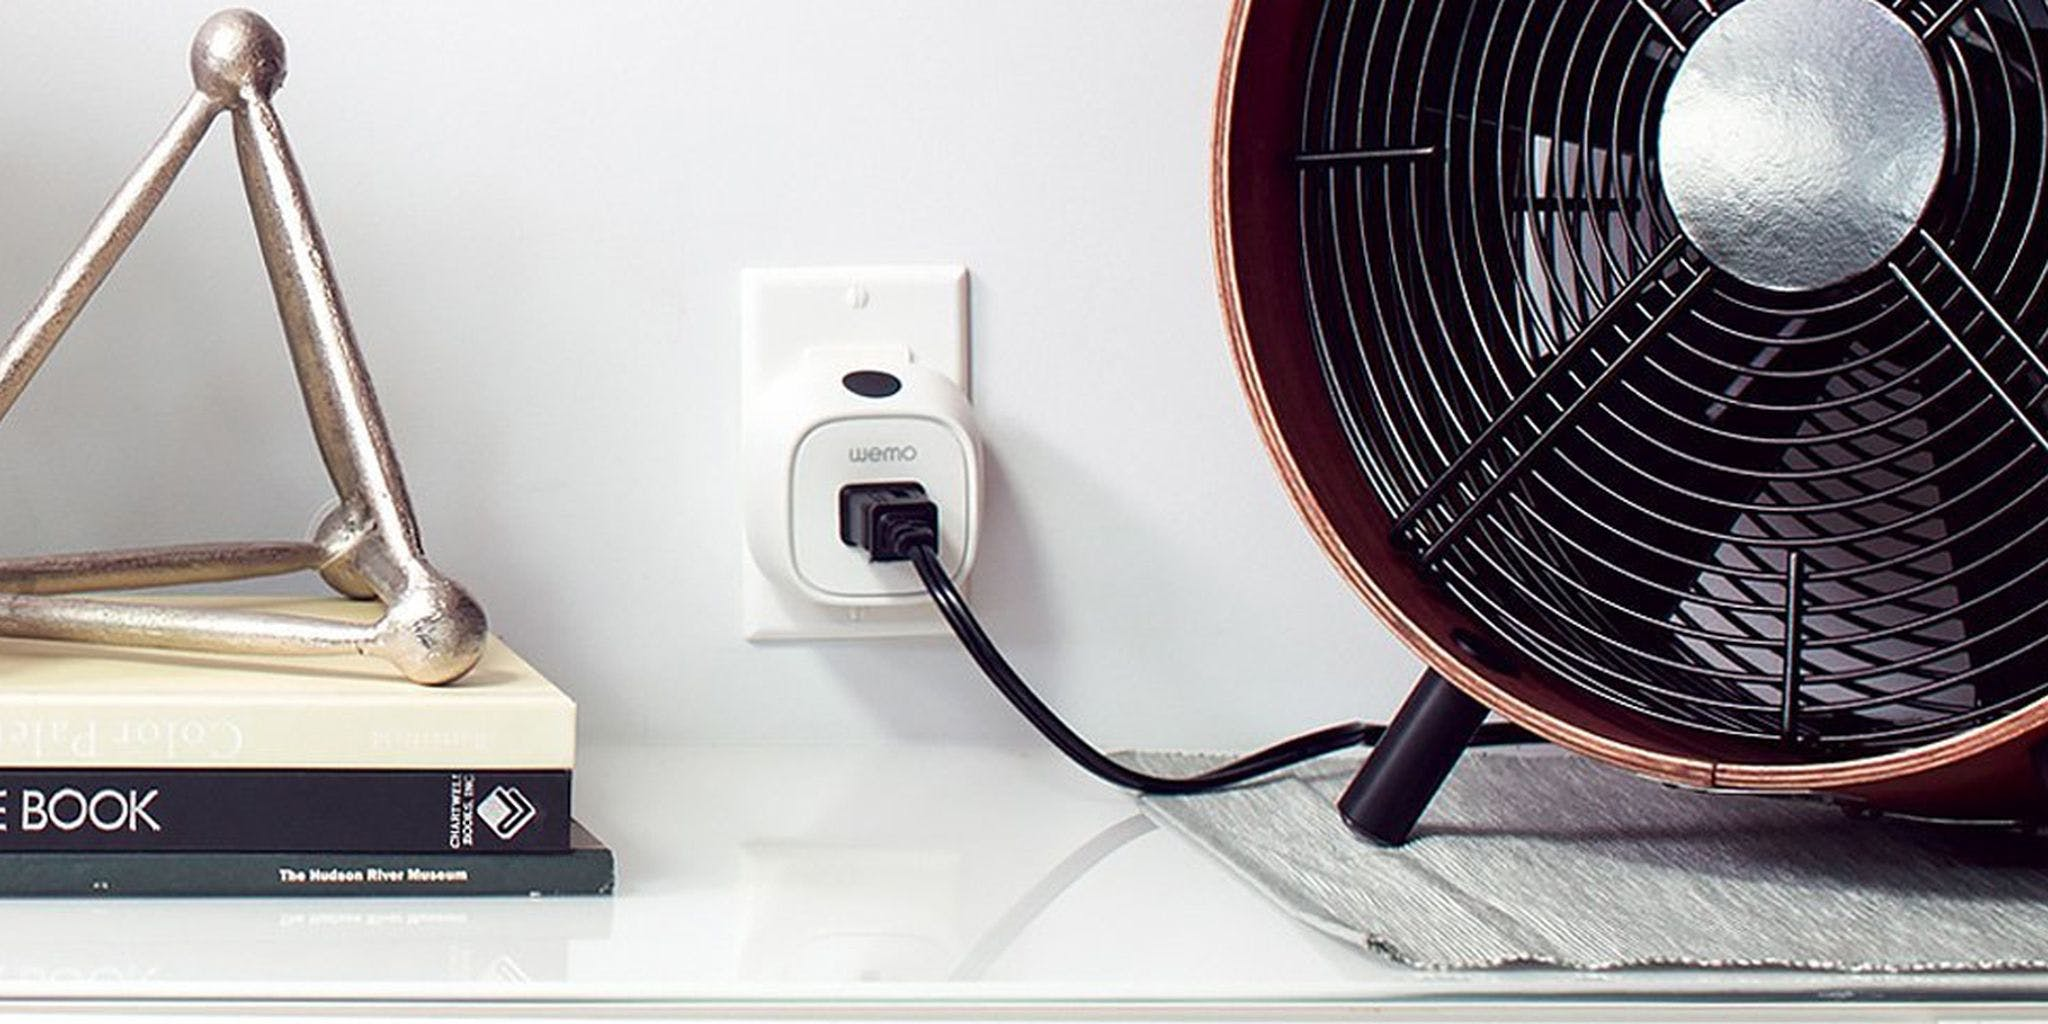 smart home devices that save money - Smart plug or power strip